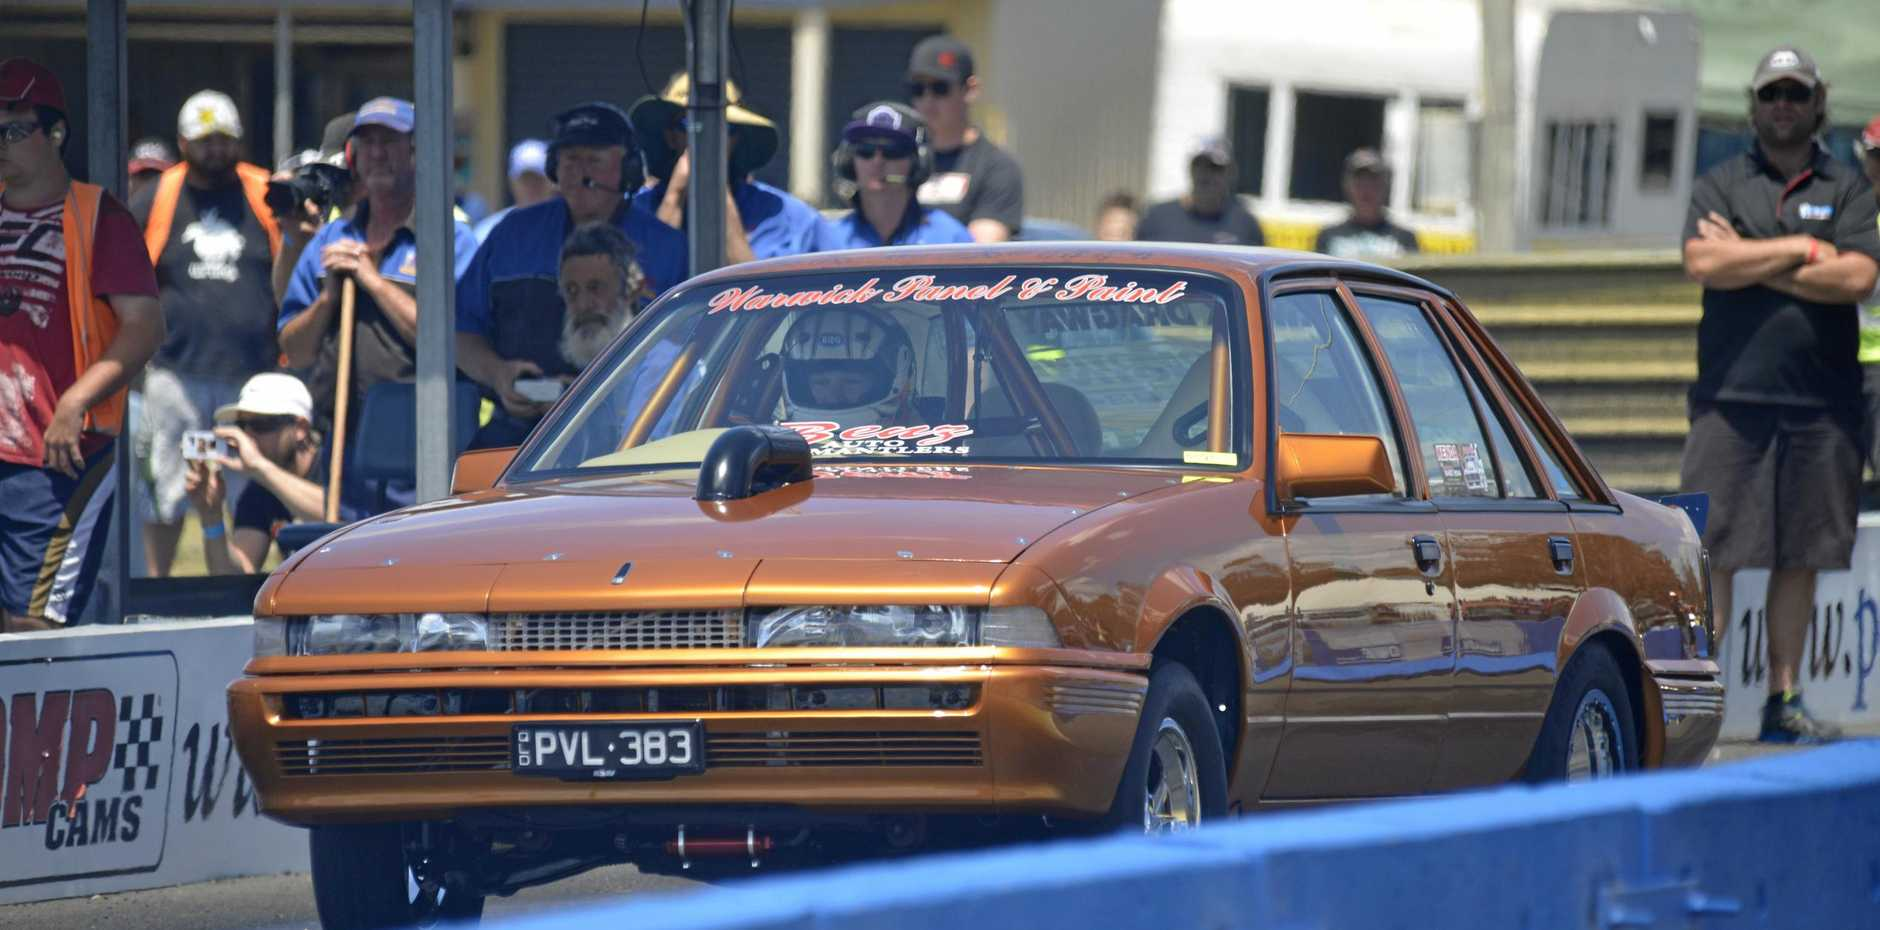 WARWICK DRIVER: Brett Benz takes off in a pass at a JP Racing Dragfest meeting and will be in action this weekend.